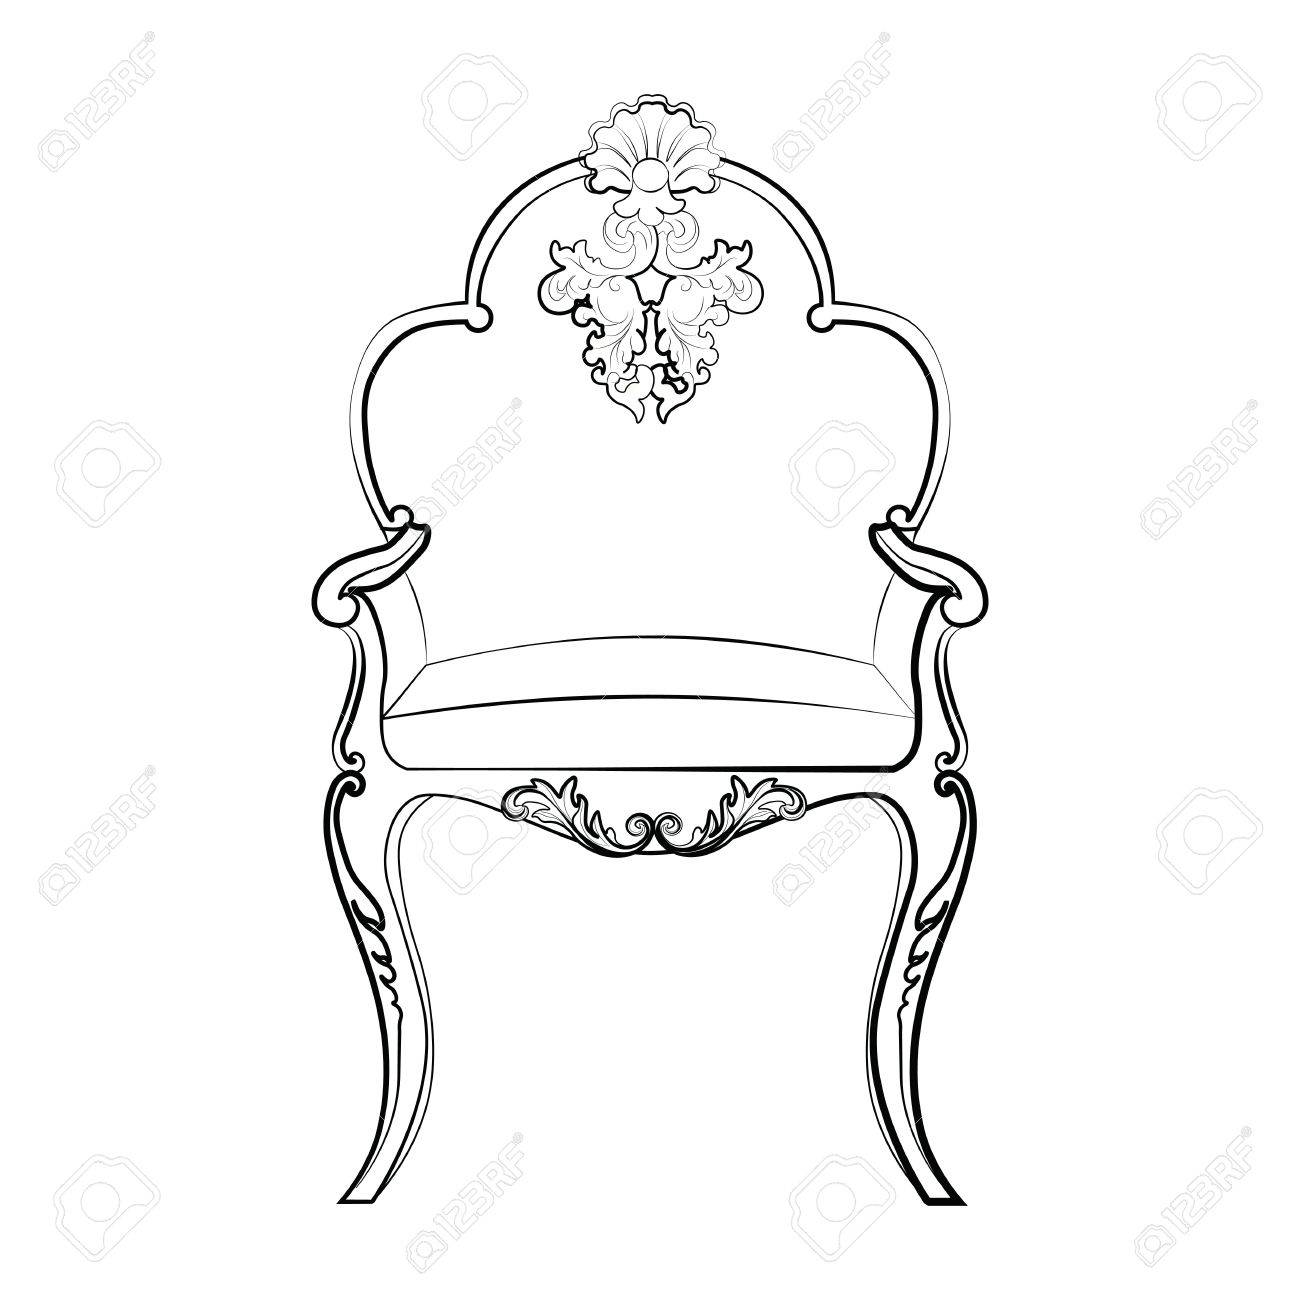 Rococo furniture sketch - Imperial Royal Chair With Classic Rococo Damask Ornaments Vector Stock Vector 58419623